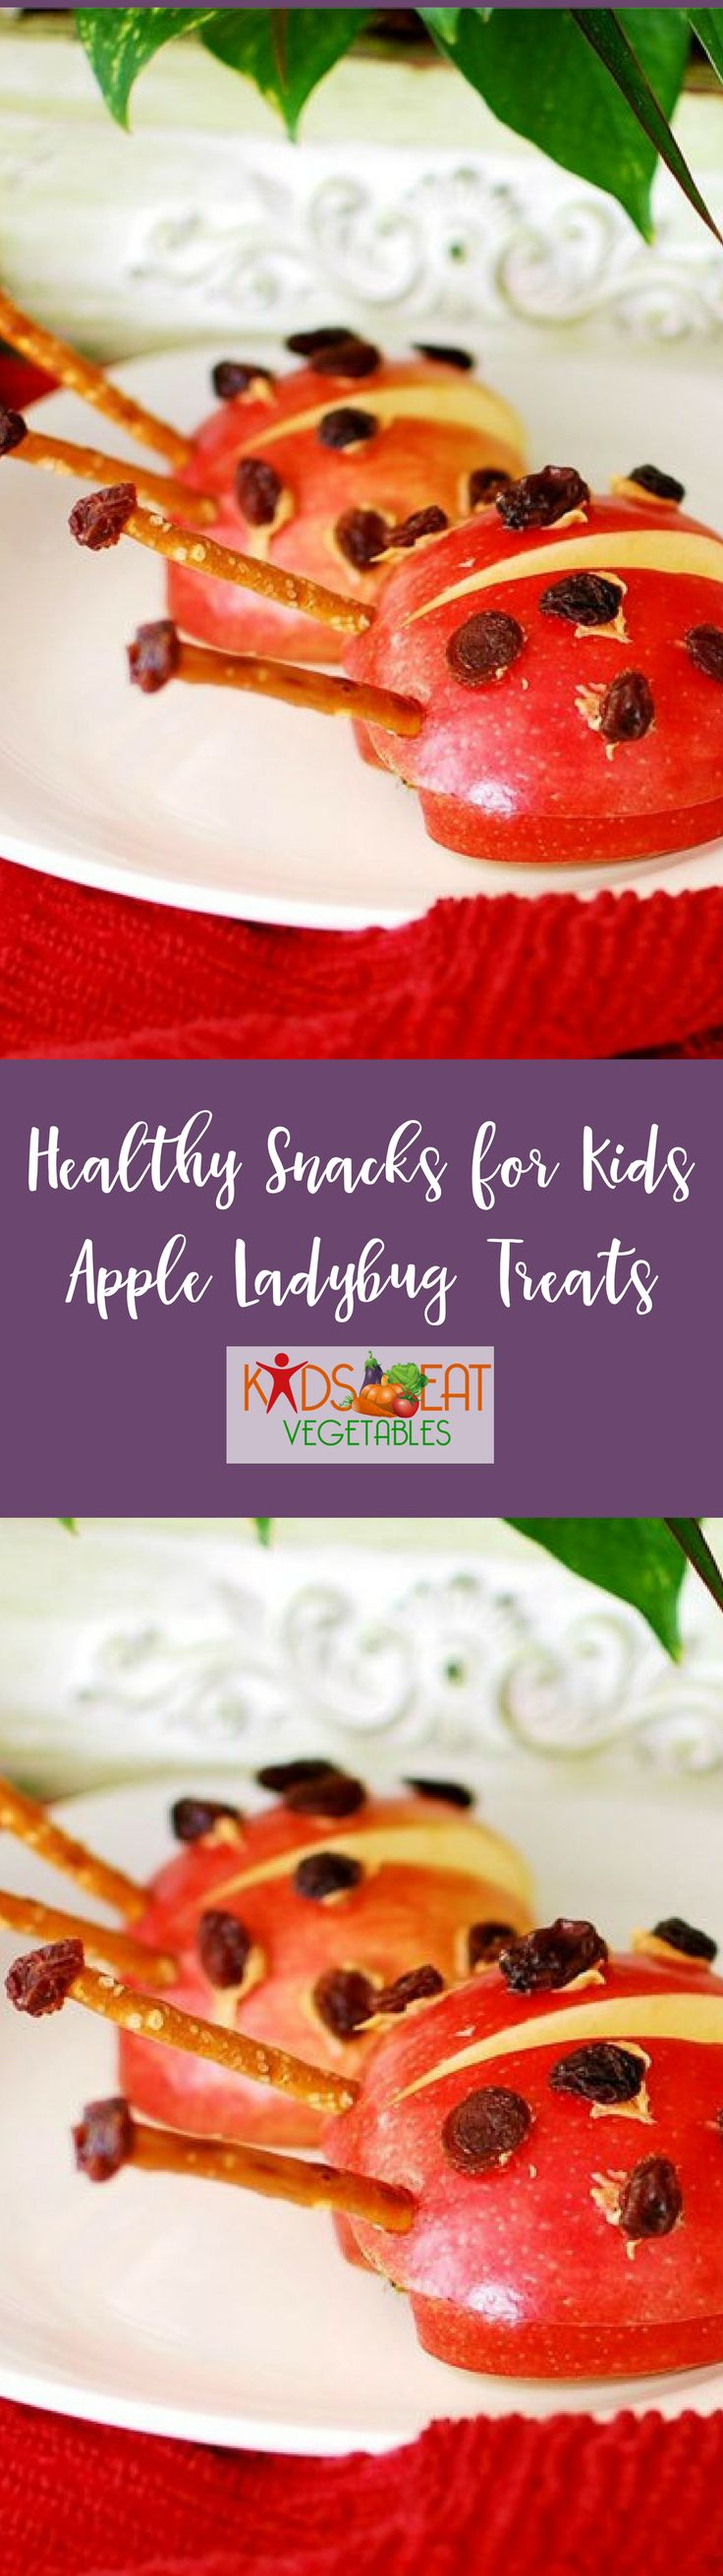 our kids will be delighted when you serve them red apples that are decorated like ladybugs. This simple snack is fun for the kids and easy to make. Slice your apples in half, dab on some natural peanut butter and splash a few spots on its back with raisins. And for a crunchy delight, add two thin pretzels for antennae's.  Apple ladybug treats are the perfect afternoon 'lift me up' when kids get a little hungry and needs a healthy snack. And for kids allergic to nuts, substitute strawberry…